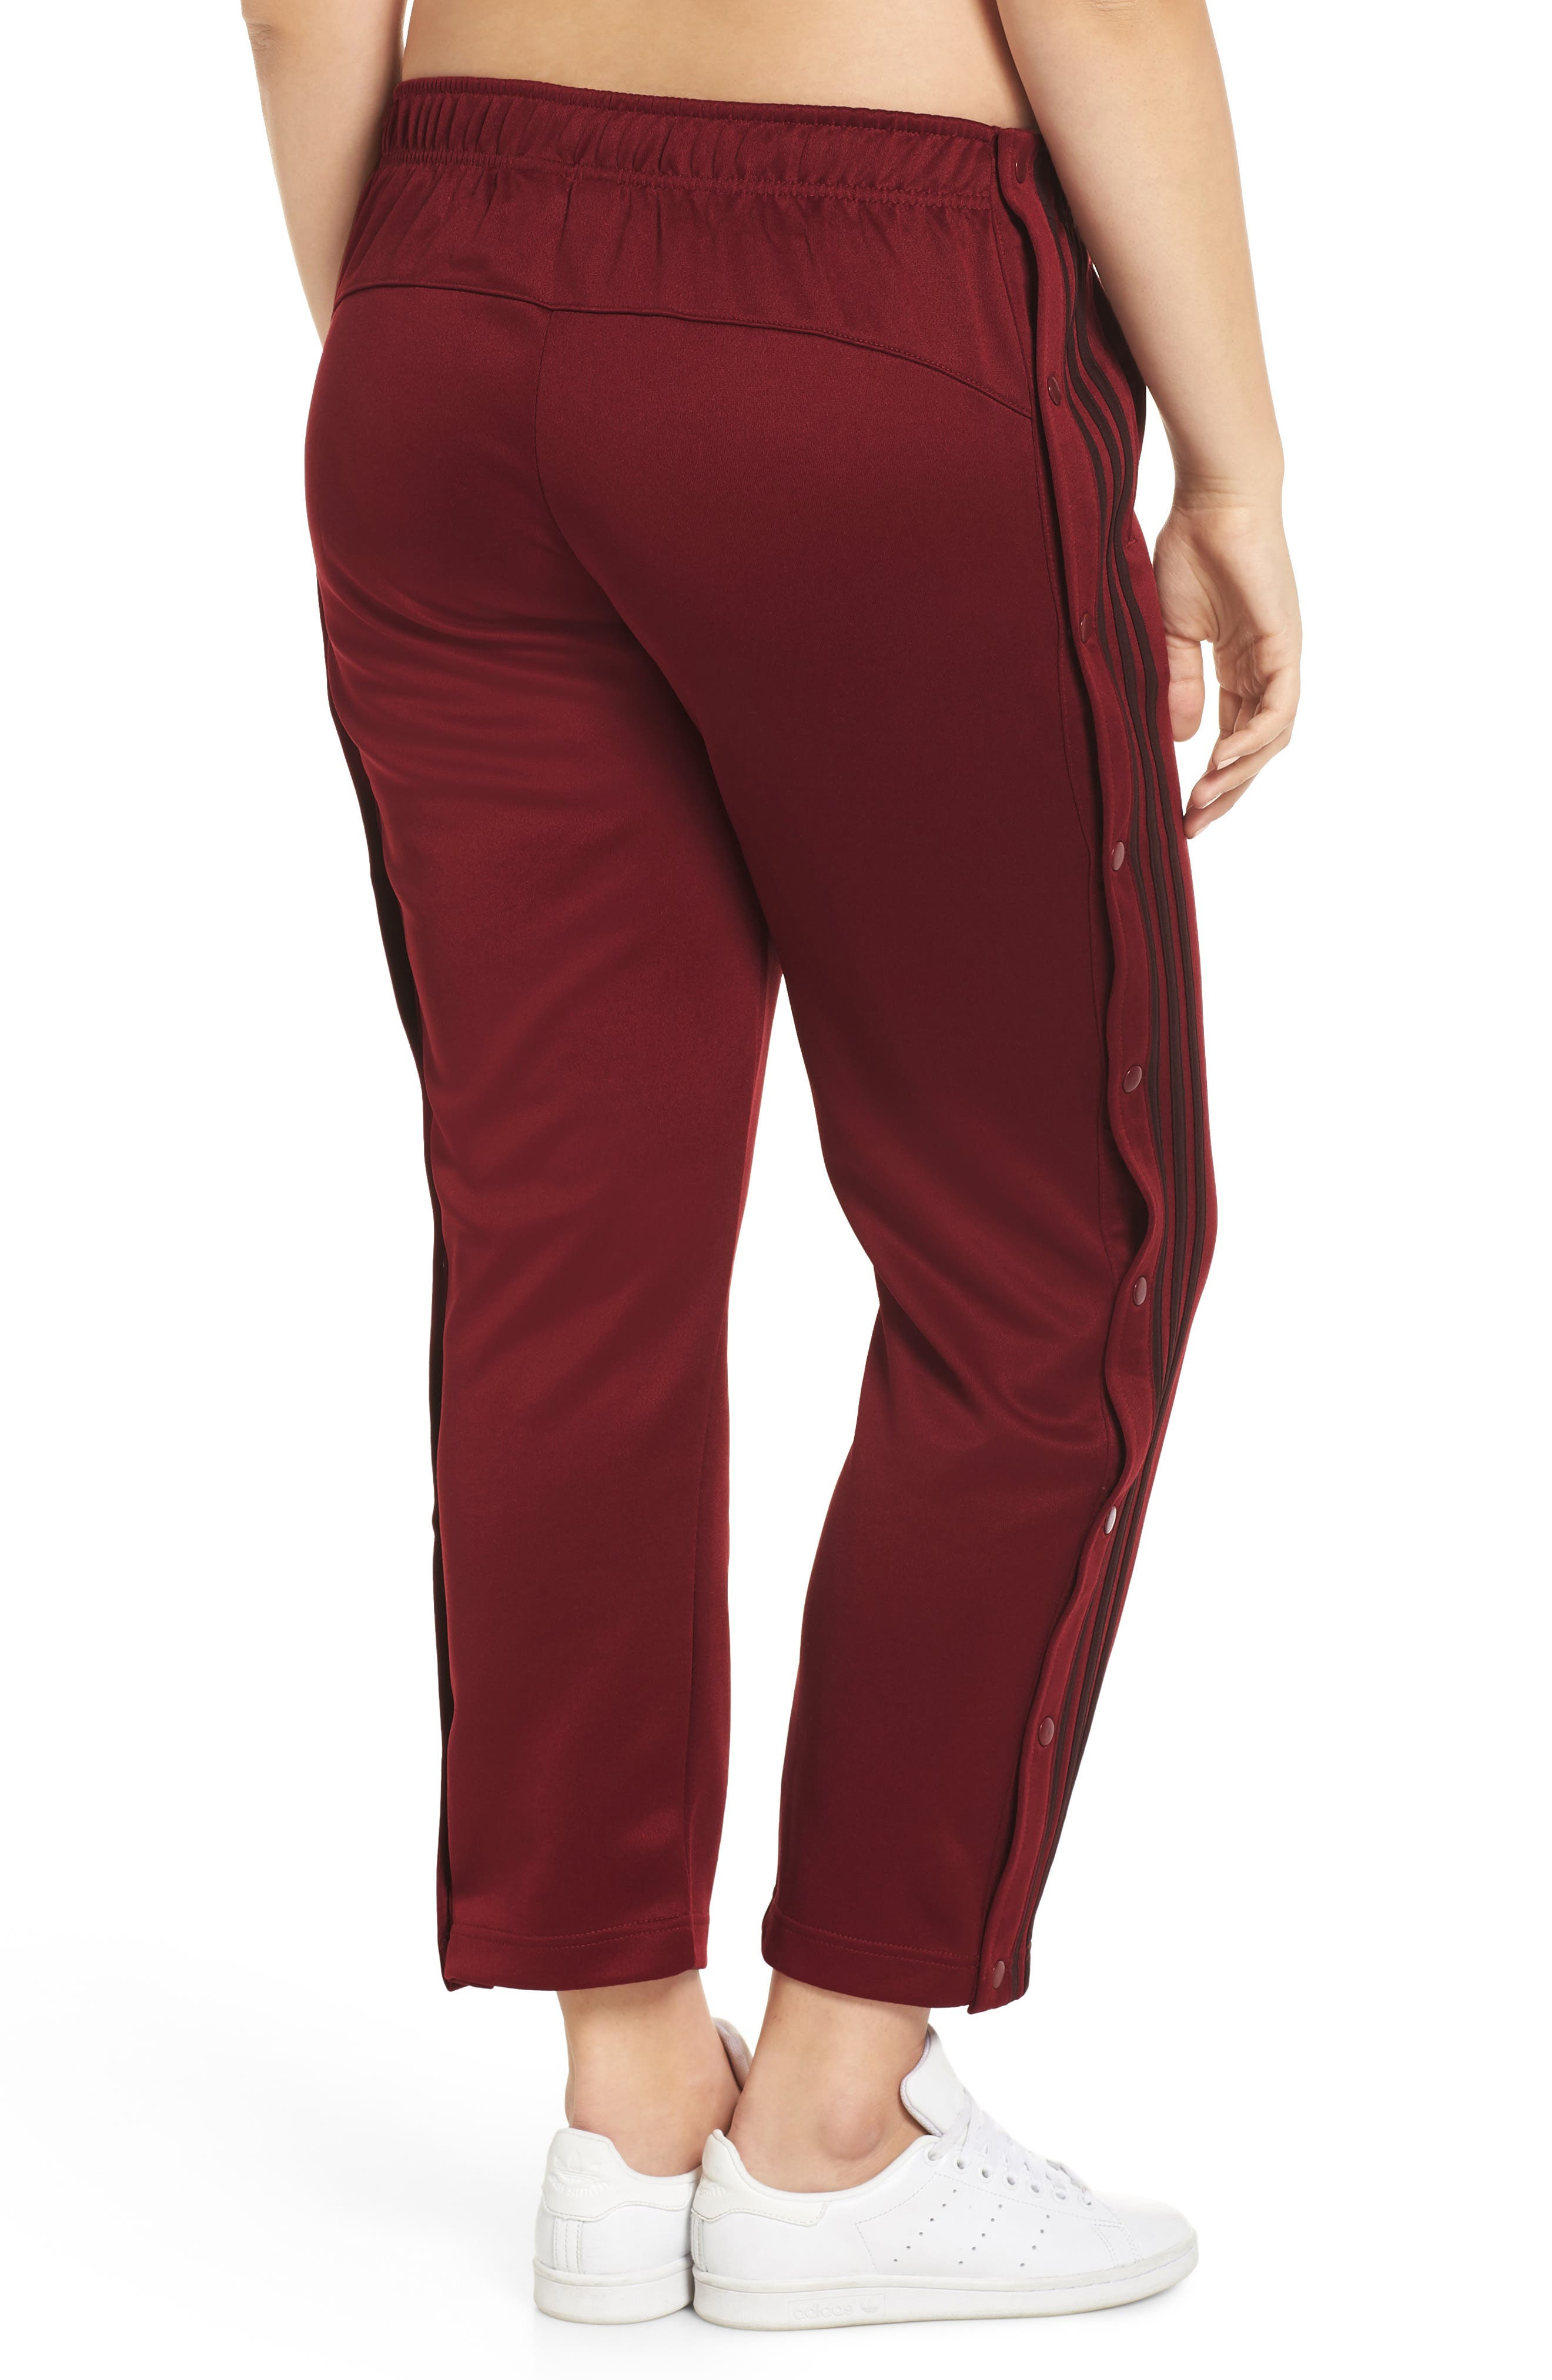 Tricot Snap Pants,                             Alternate thumbnail 8, color,                             NOBLE MAROON/ NIGHT RED